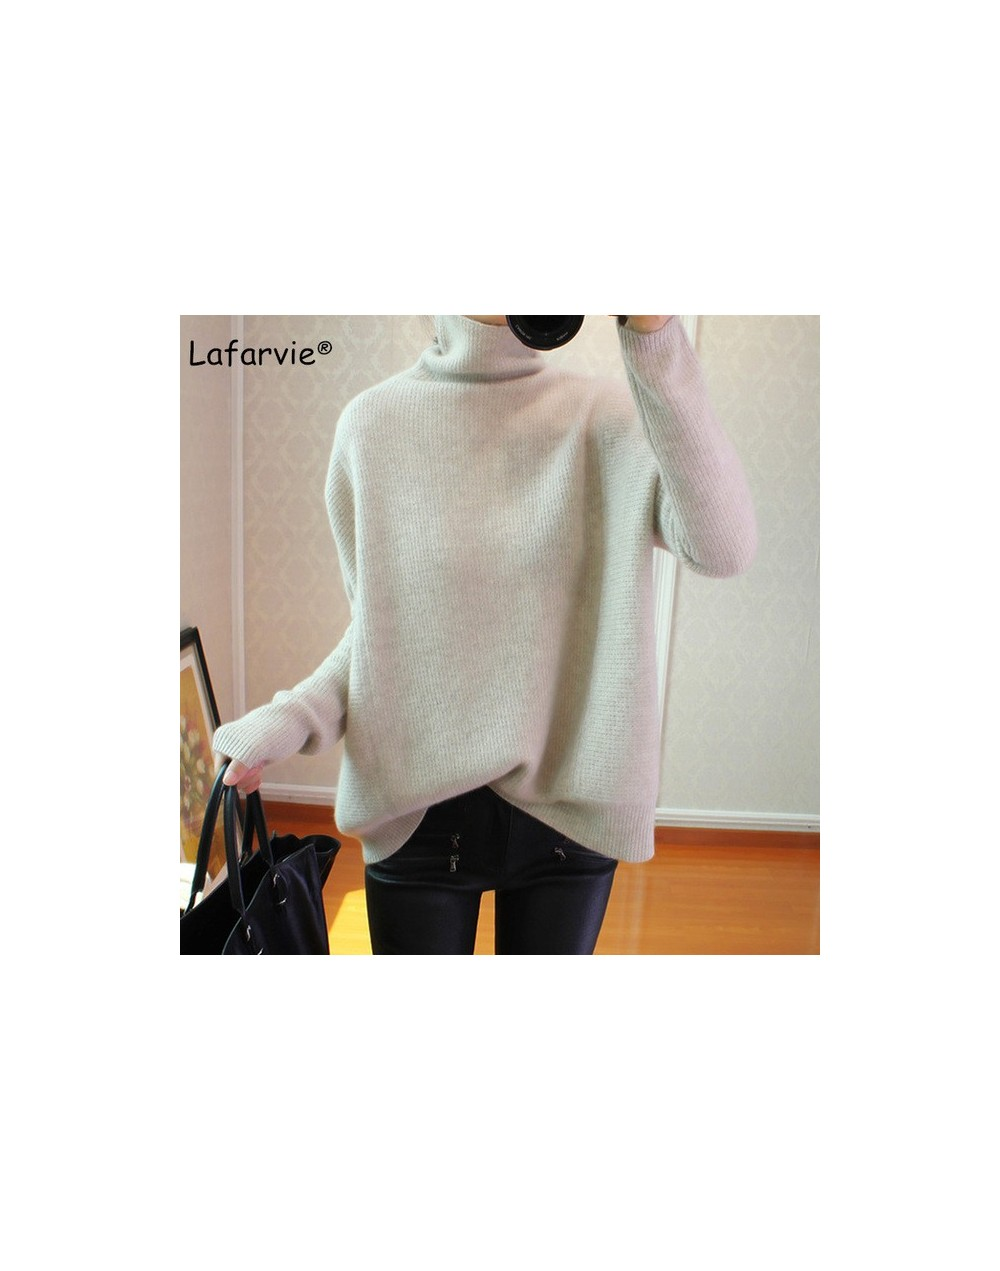 Cashmere Blended Turtleneck Knitted Sweater Women Autumn Winter Long Sleeve Casual Loose Thick Warm Pullover Female - beige ...